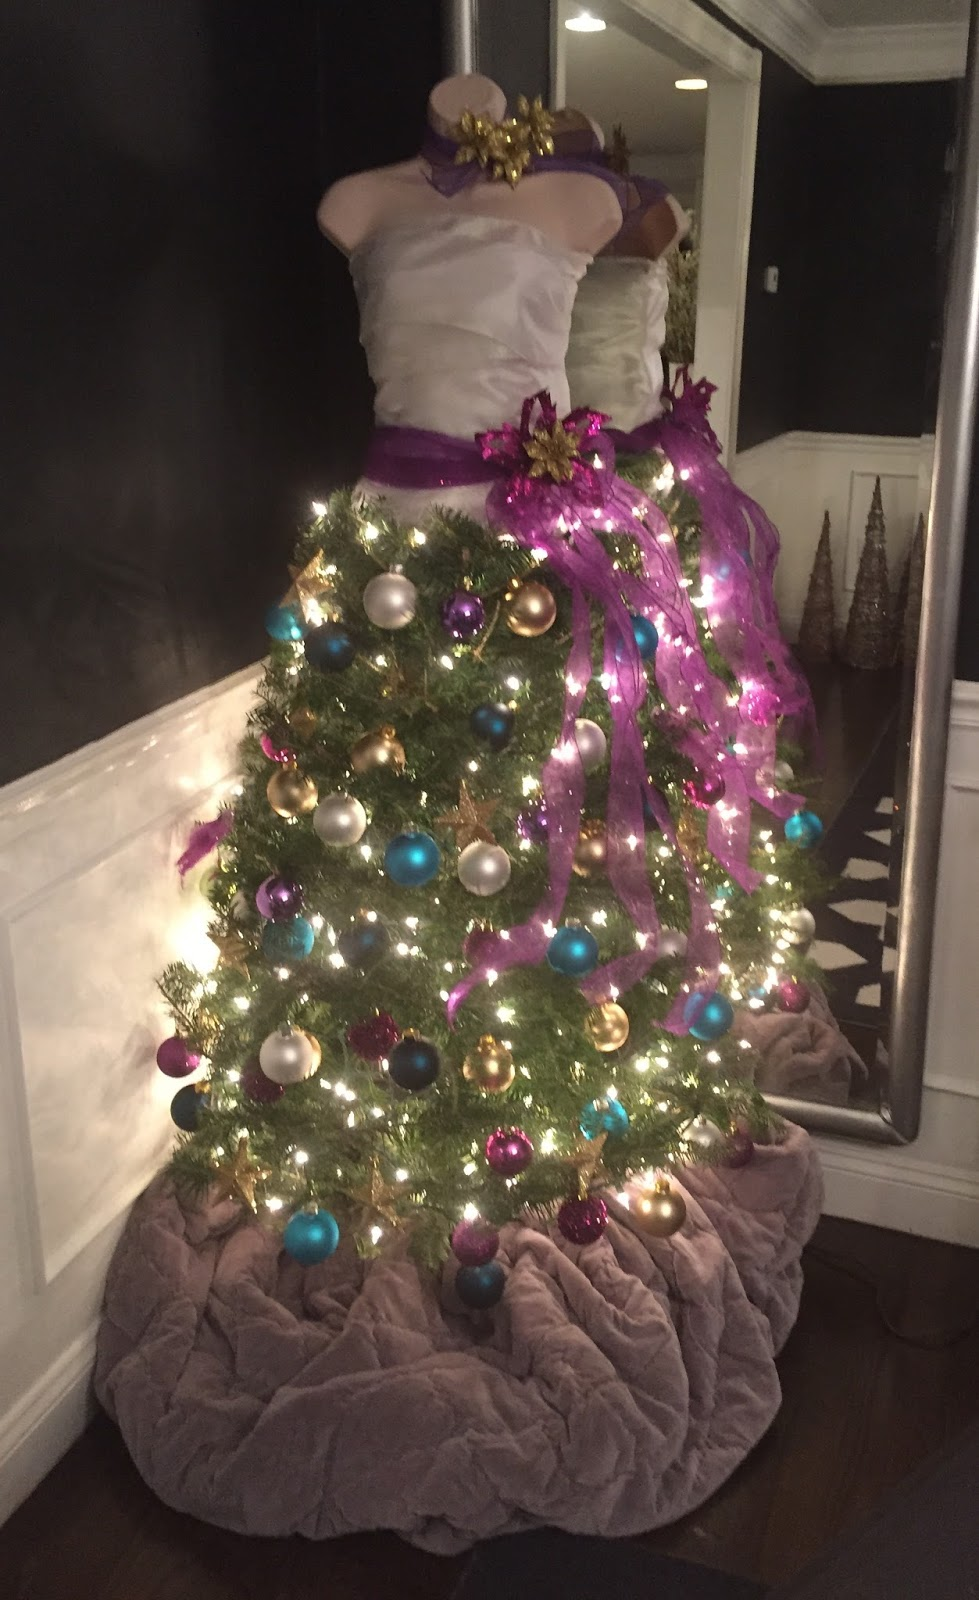 House Updates Christmas Decorating And Our Dress Form